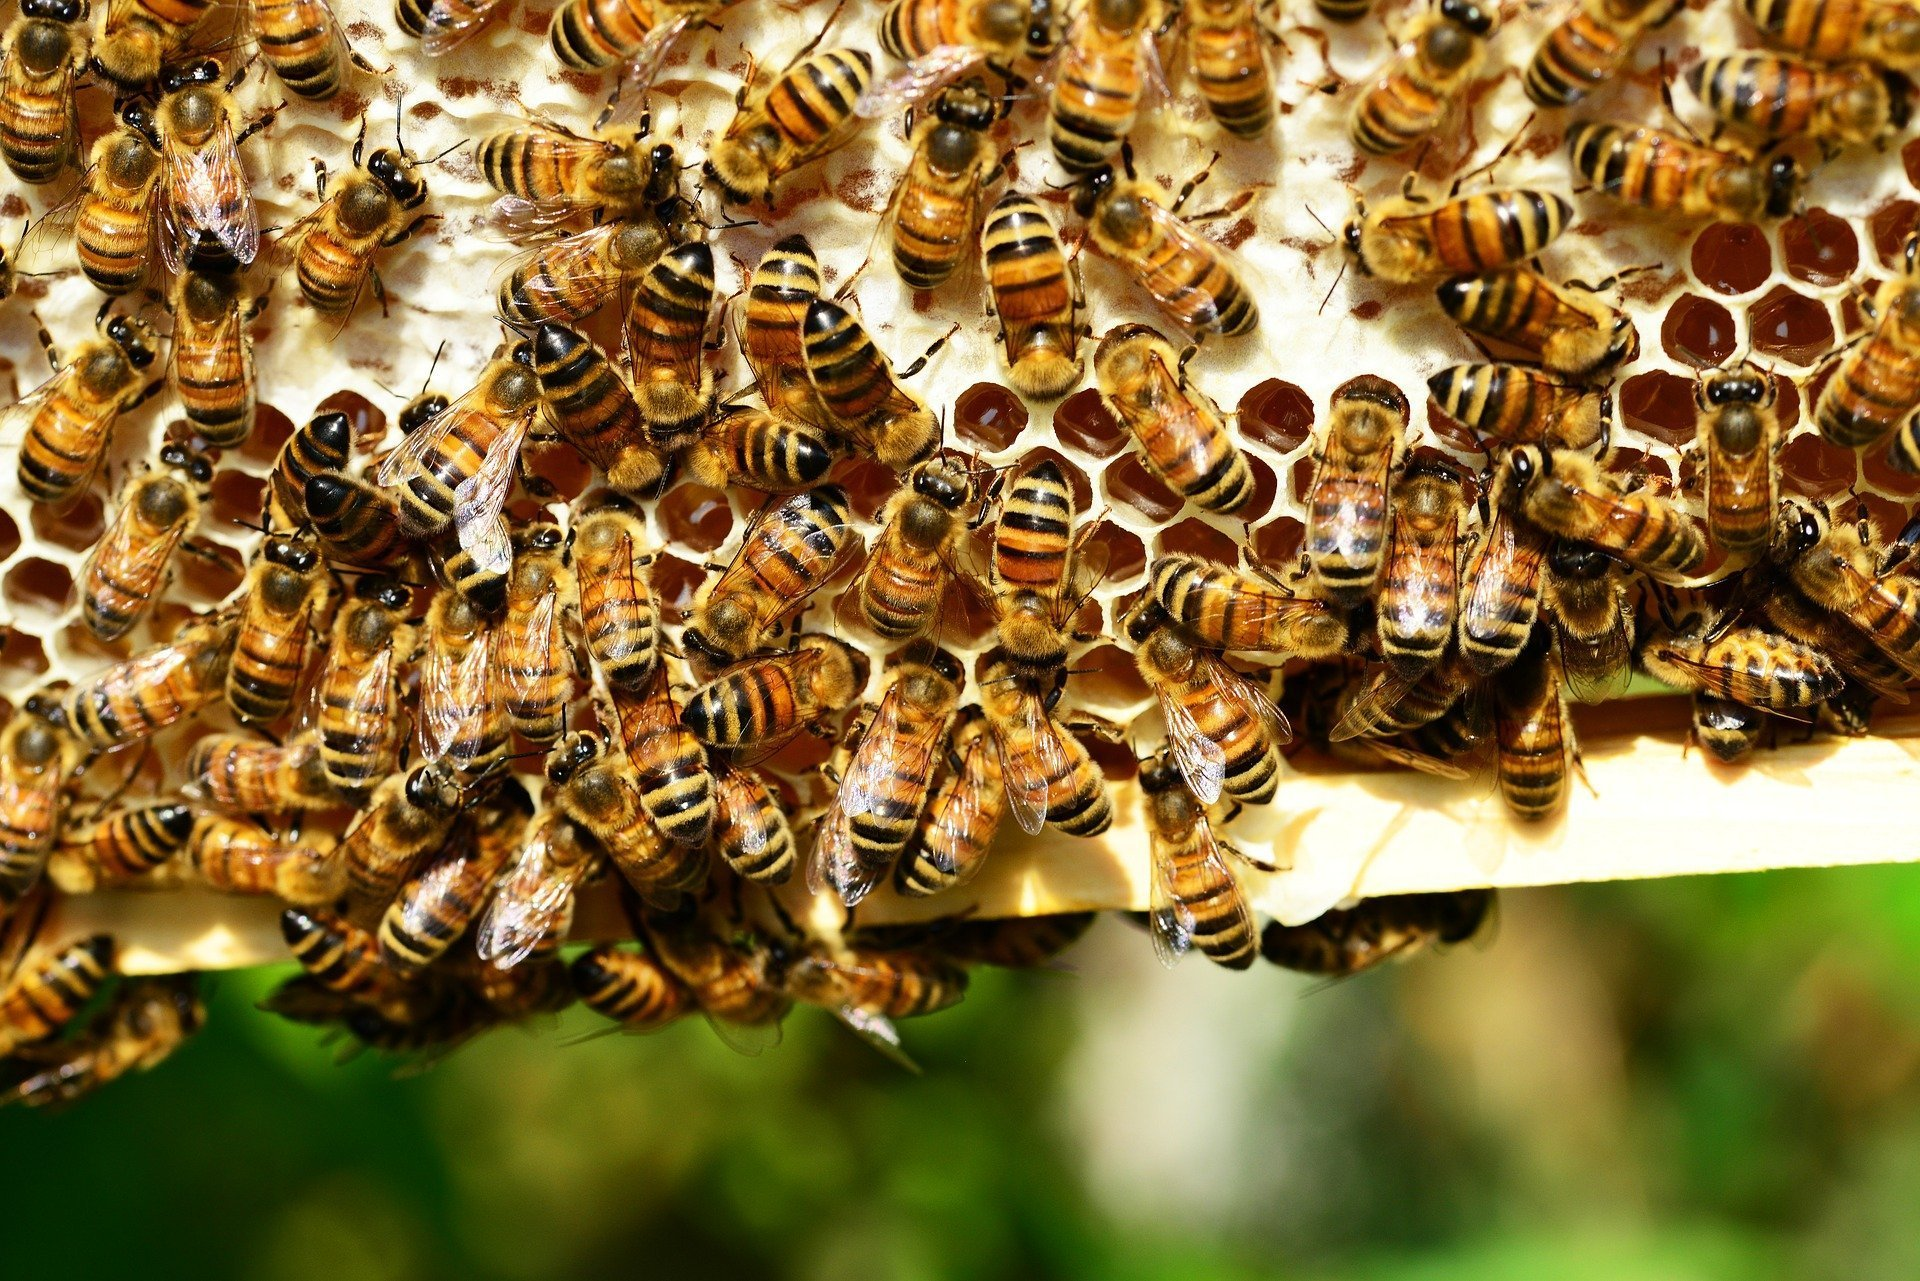 Trump Administration Dealt Multiple Blows to Honey Bees This Month